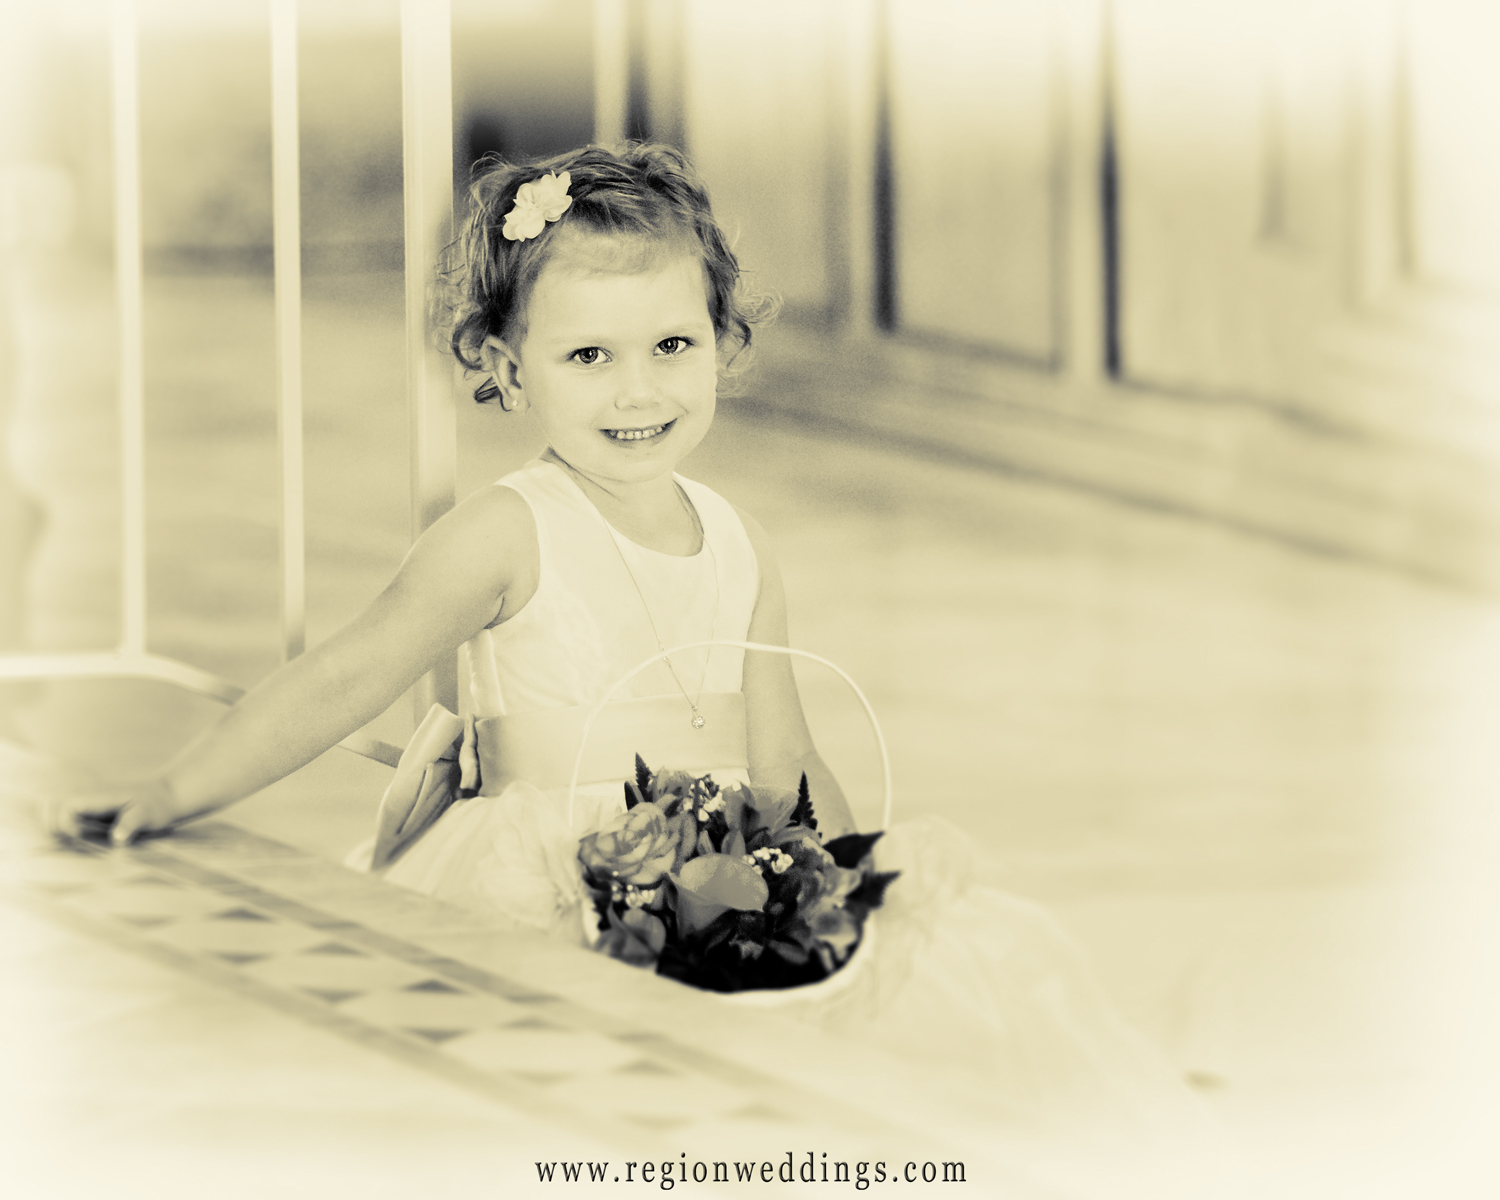 The flower girl takes a break during a Catholic wedding ceremony.